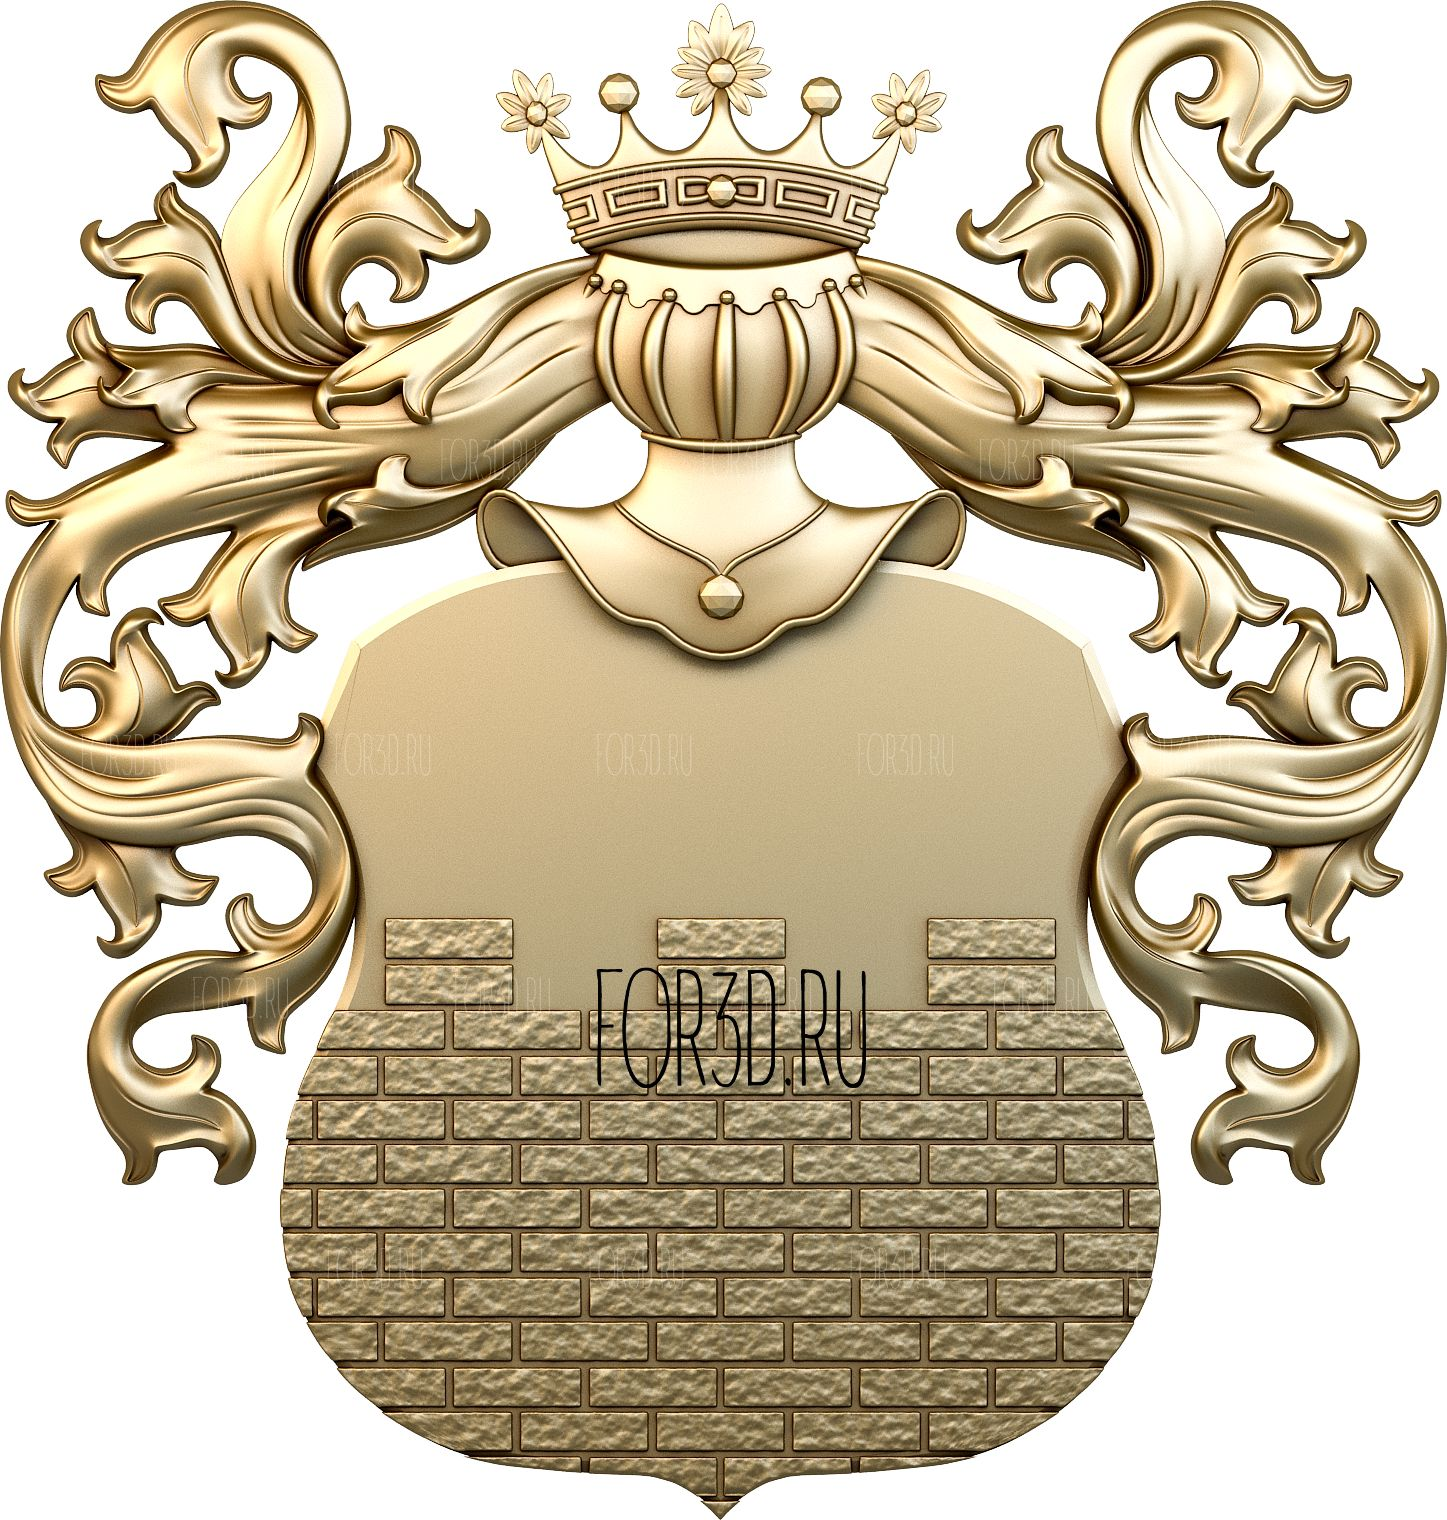 Coat of arms 0059 3d stl модель для ЧПУ